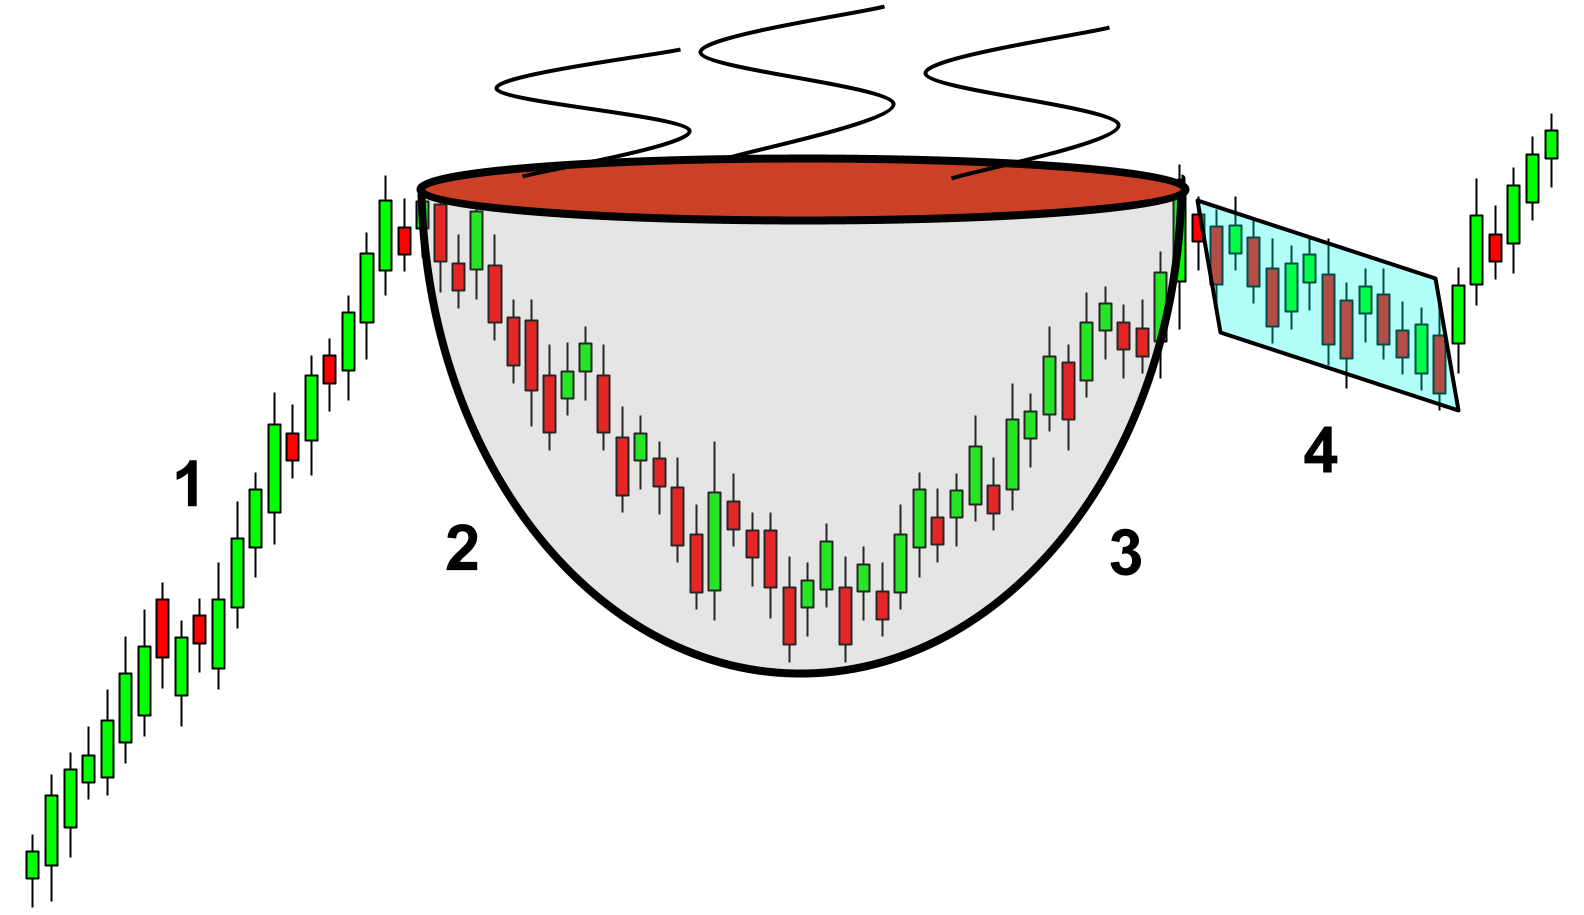 The cup and handle shape and the four key components for the pattern.